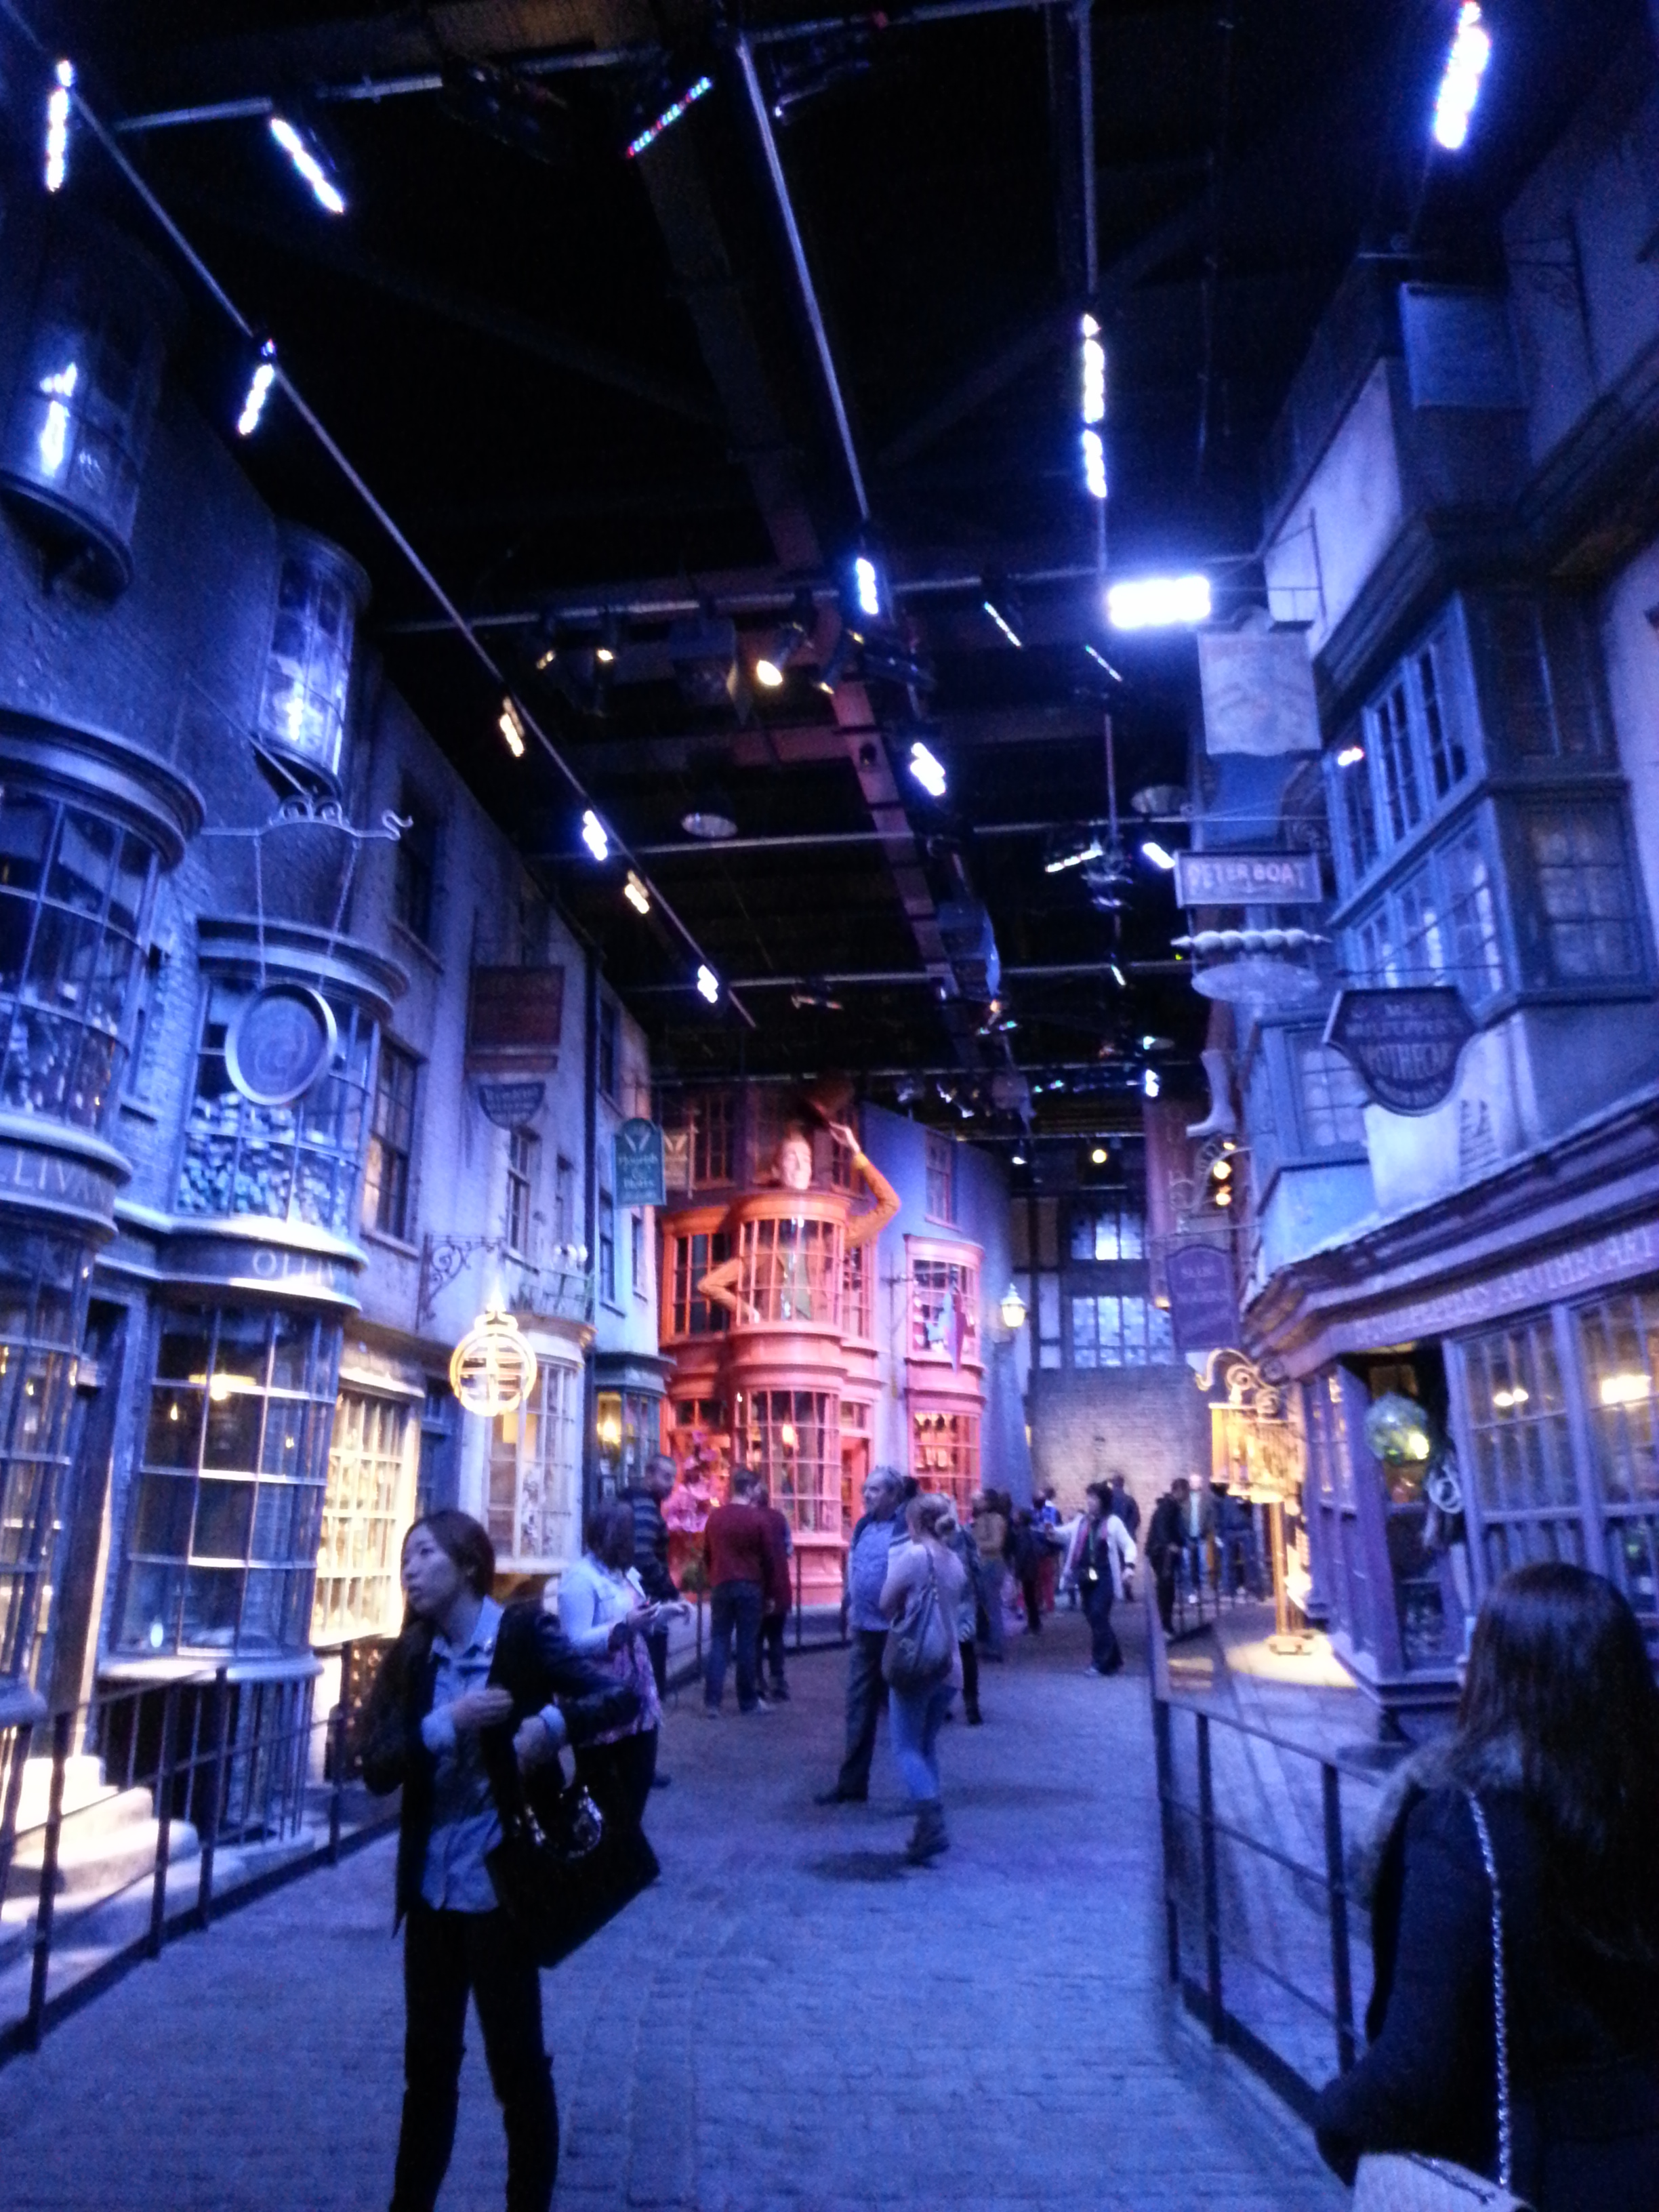 The entirety of Diagon Alley was there in all of its glory.